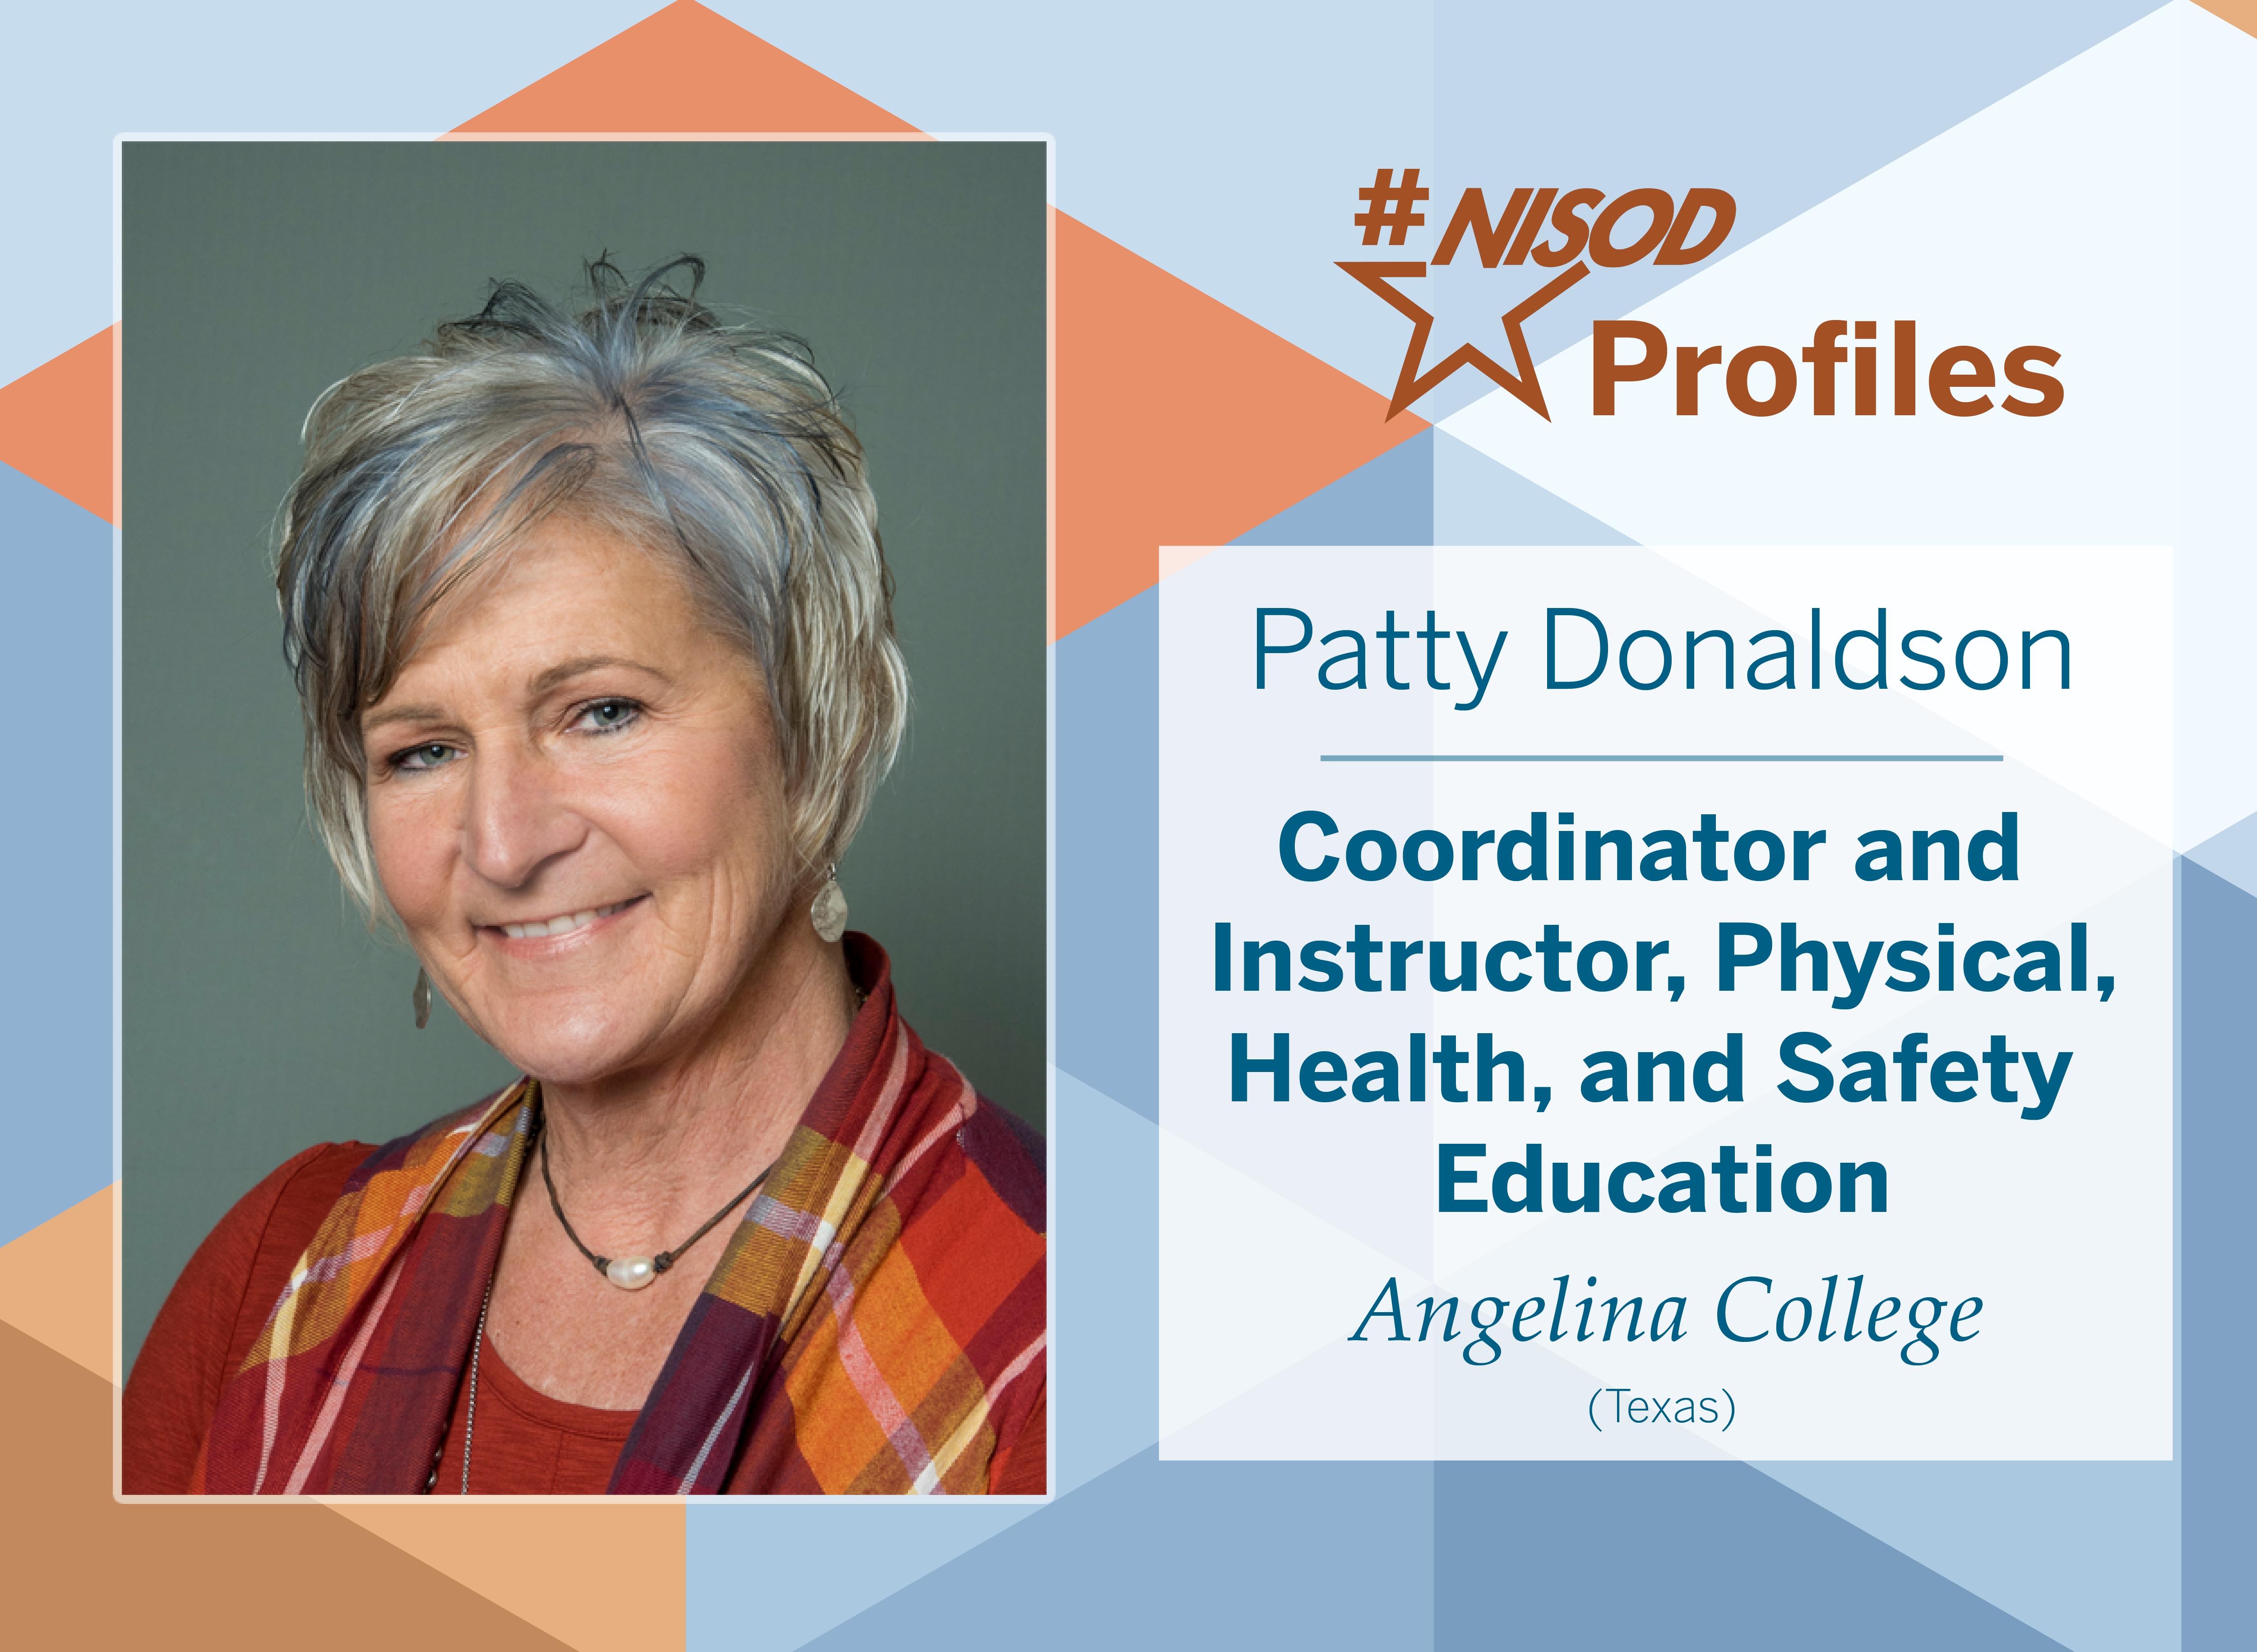 #NISODProfiles Patty Donaldson